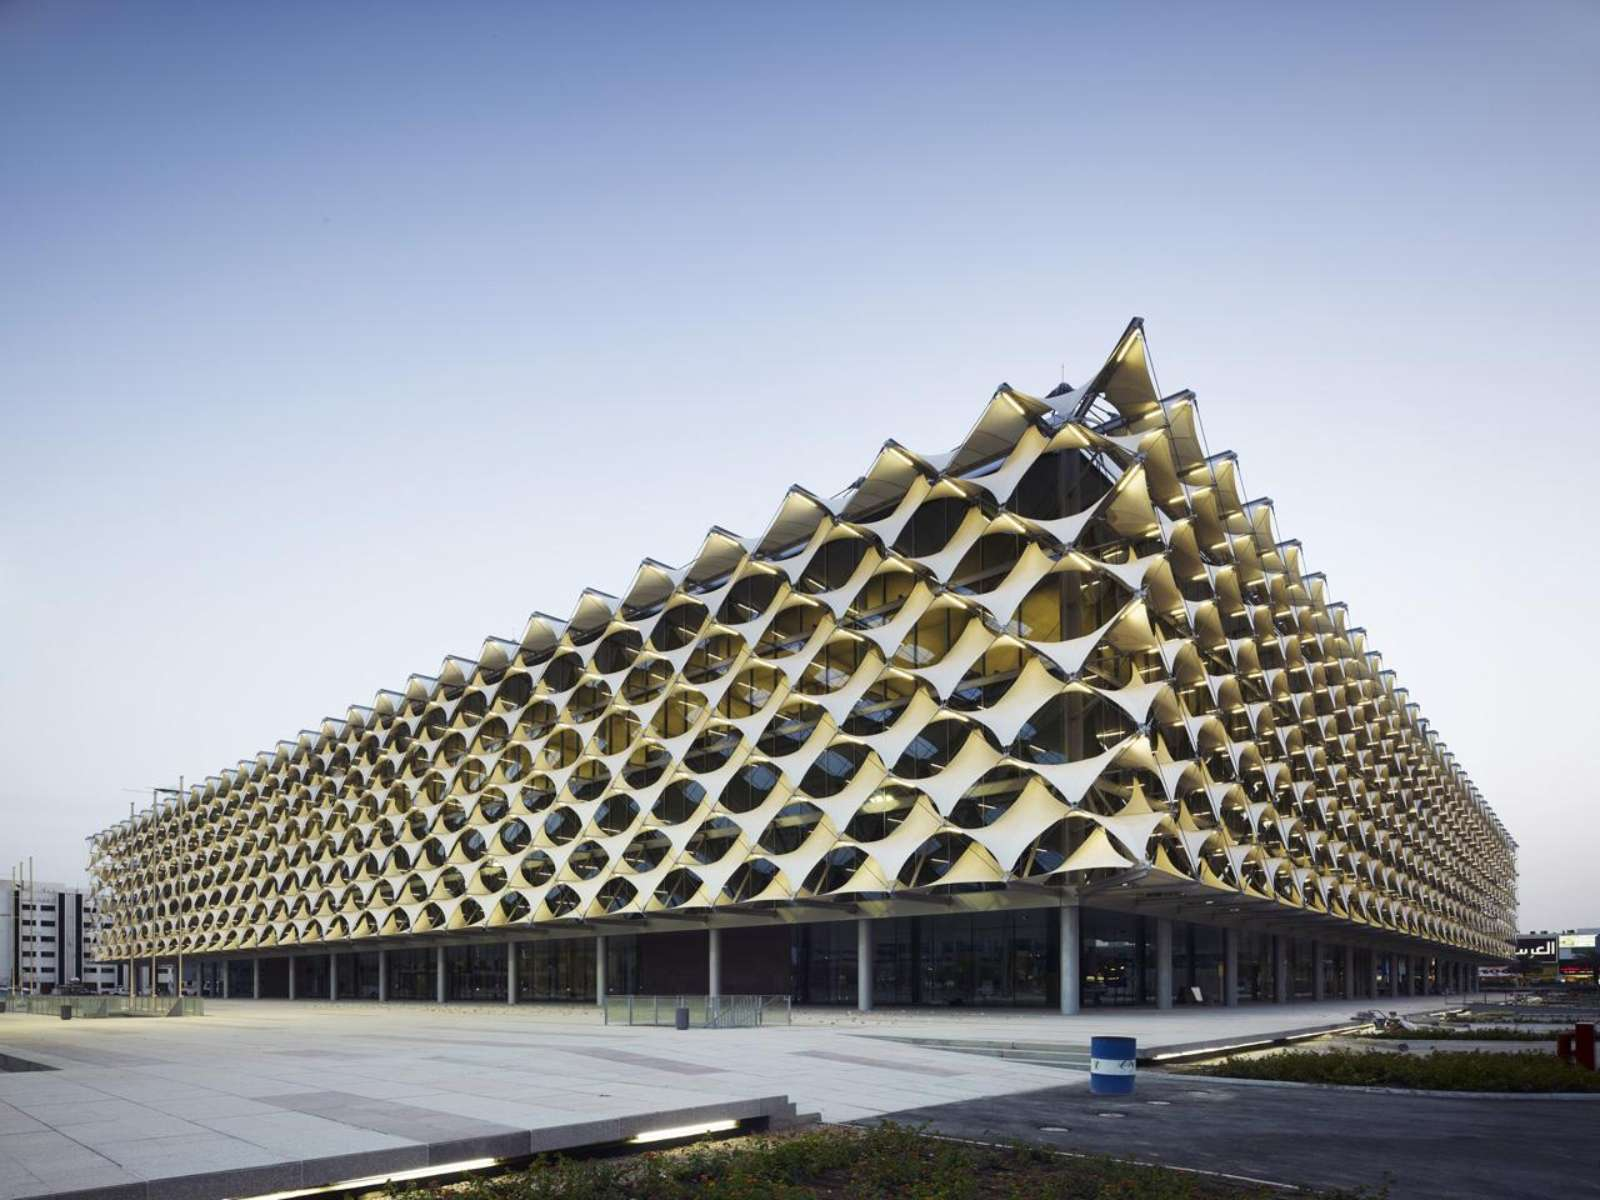 03-King-Fahad-National-Library-by-Gerber-Architekten